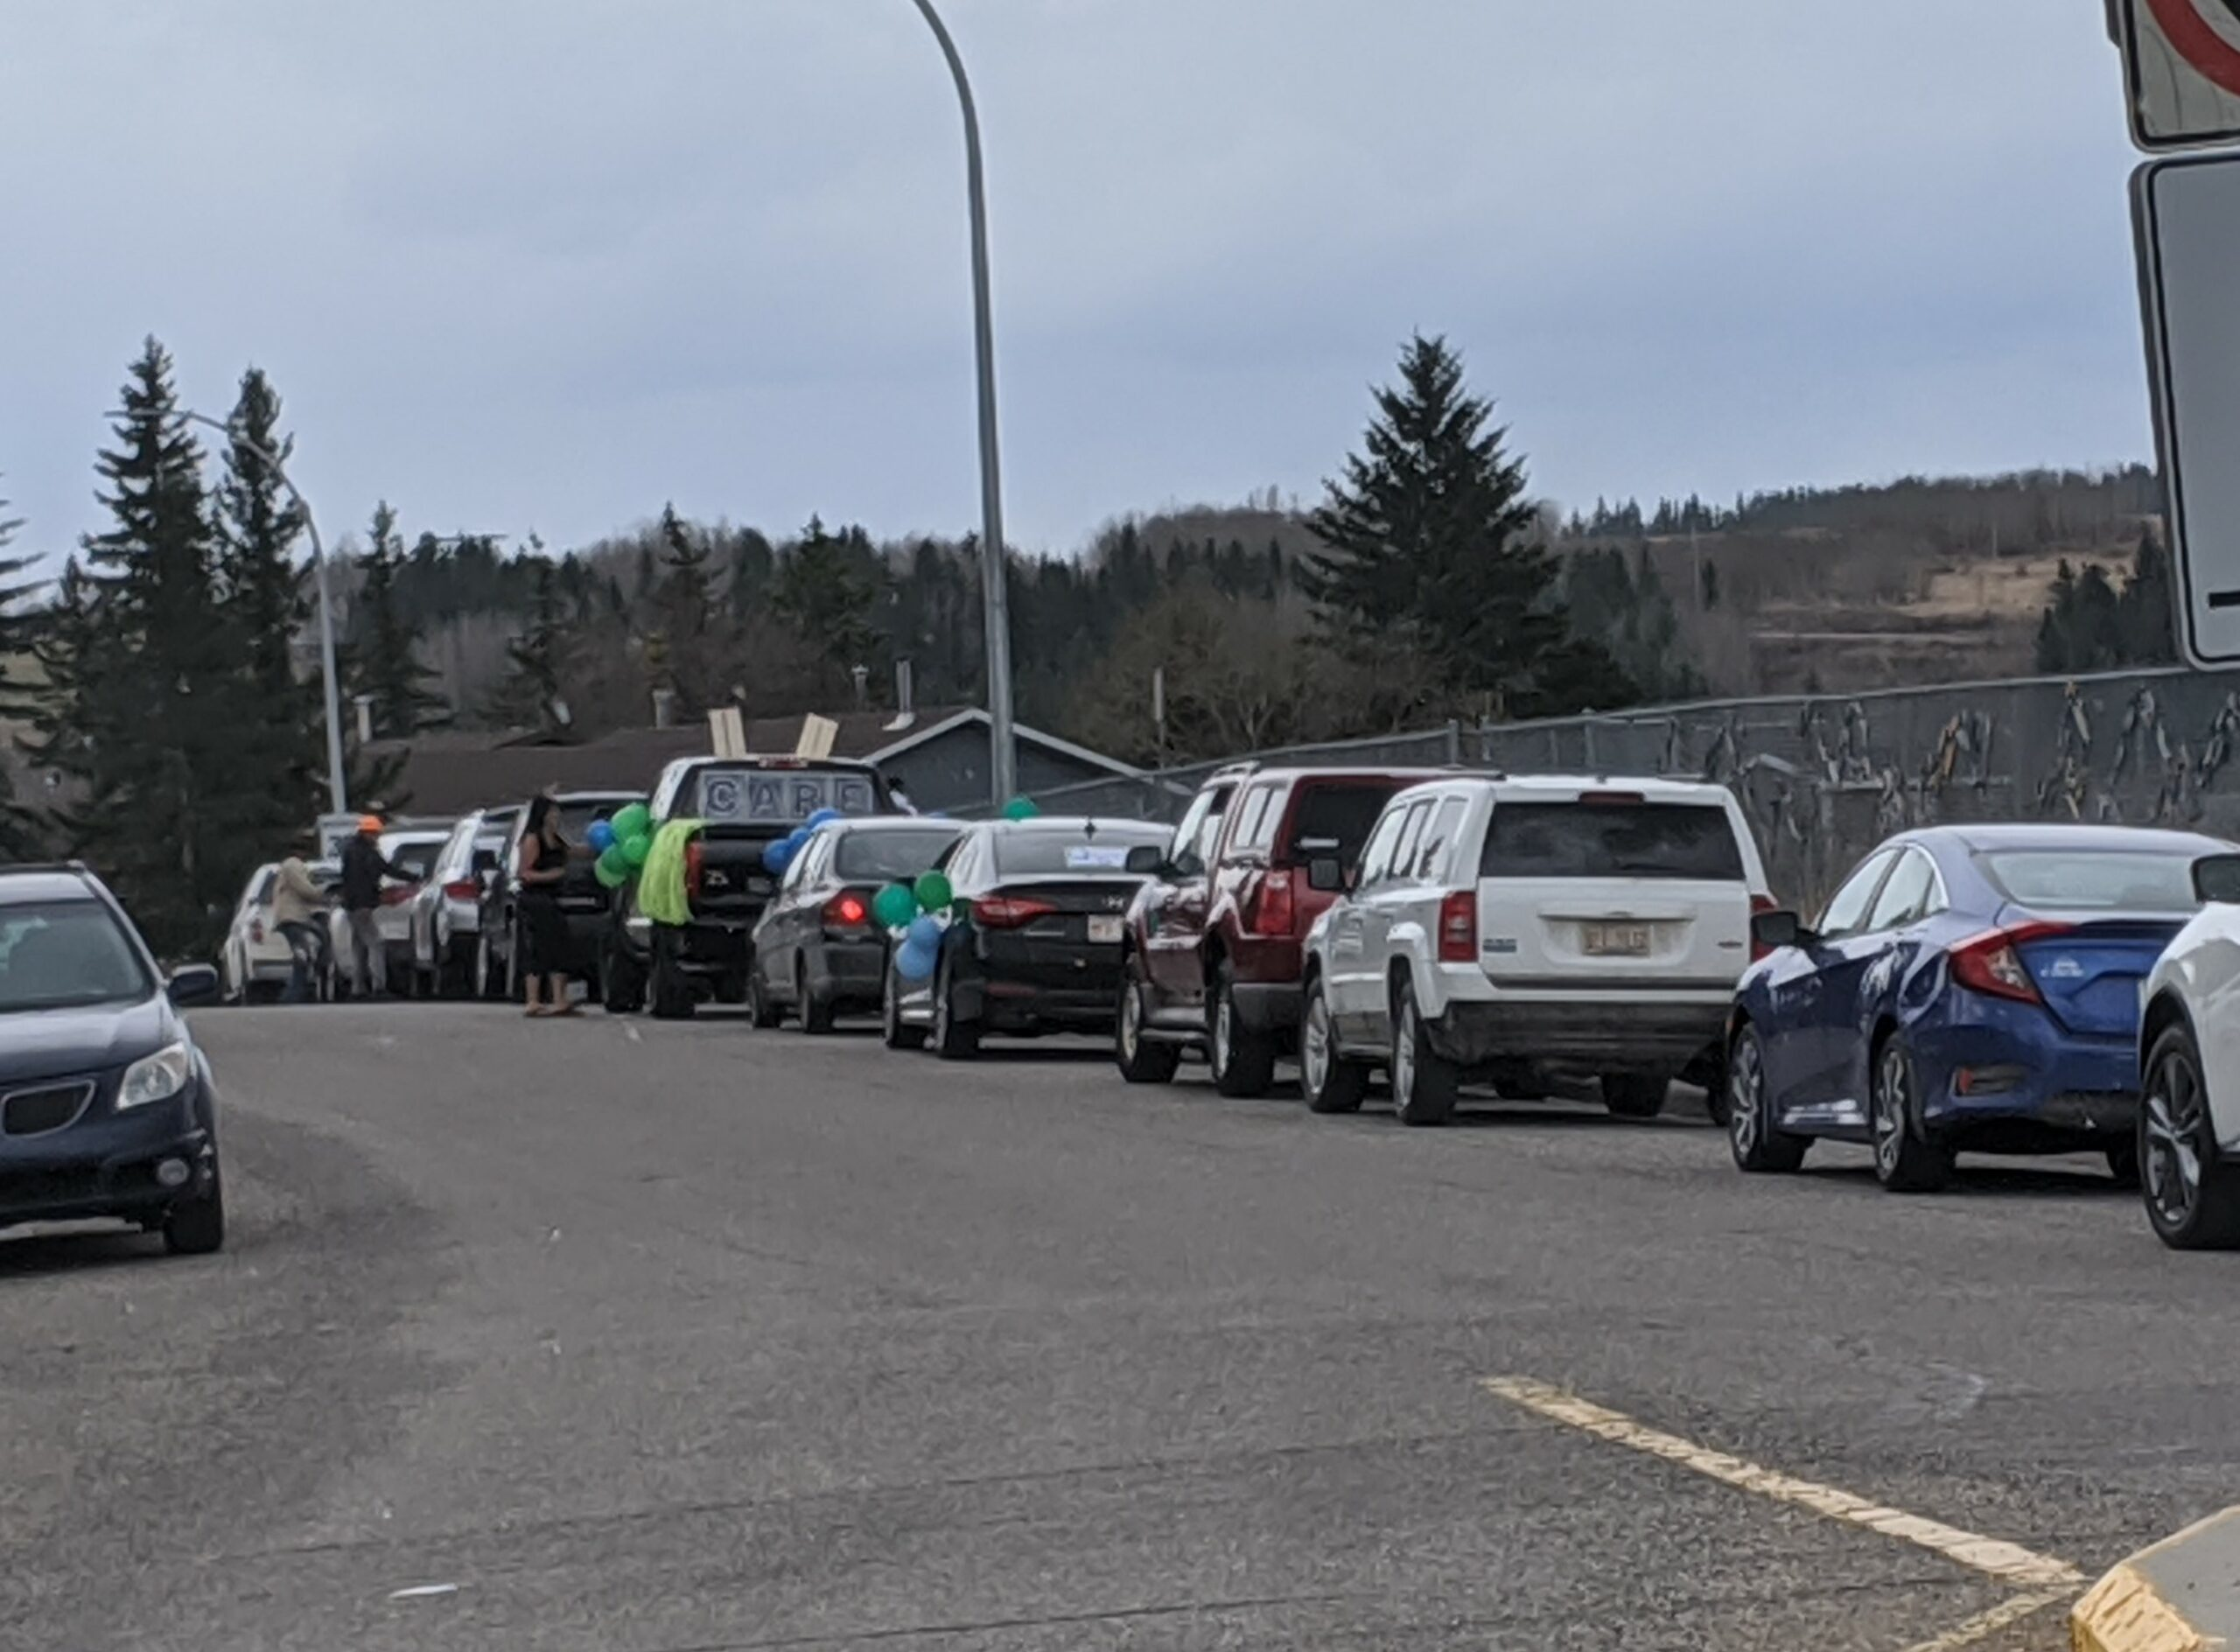 Drive by parade to kick off seniors039 week in Cochrane scaled